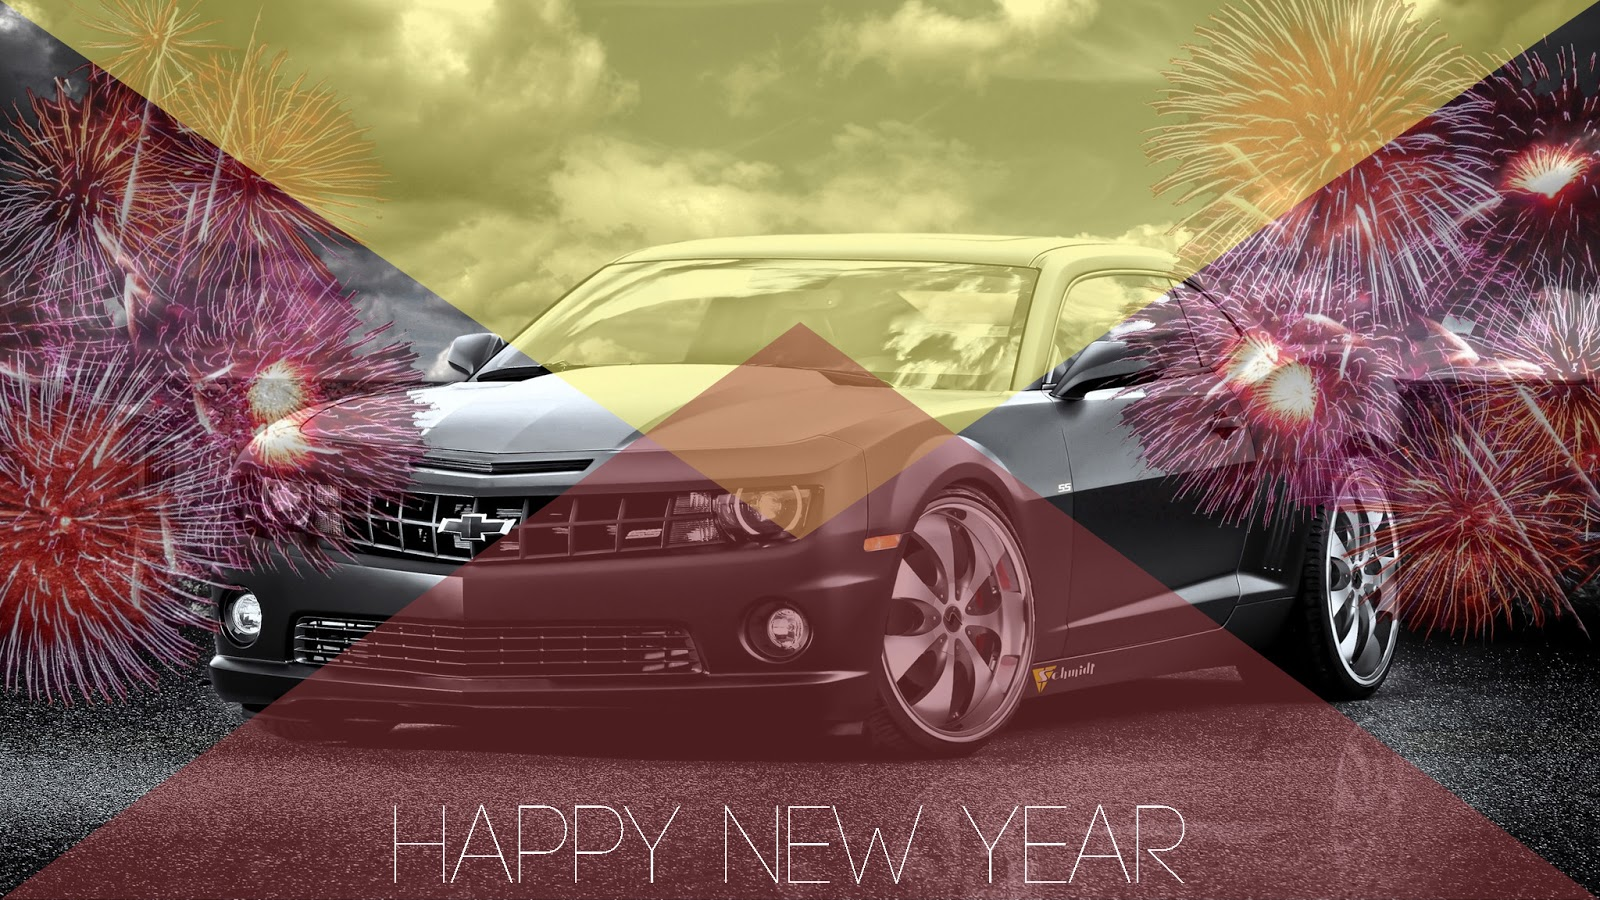 Wishing You The Happiest New Year And All The Best In 2013! Love,. Greg May  Chevrolet